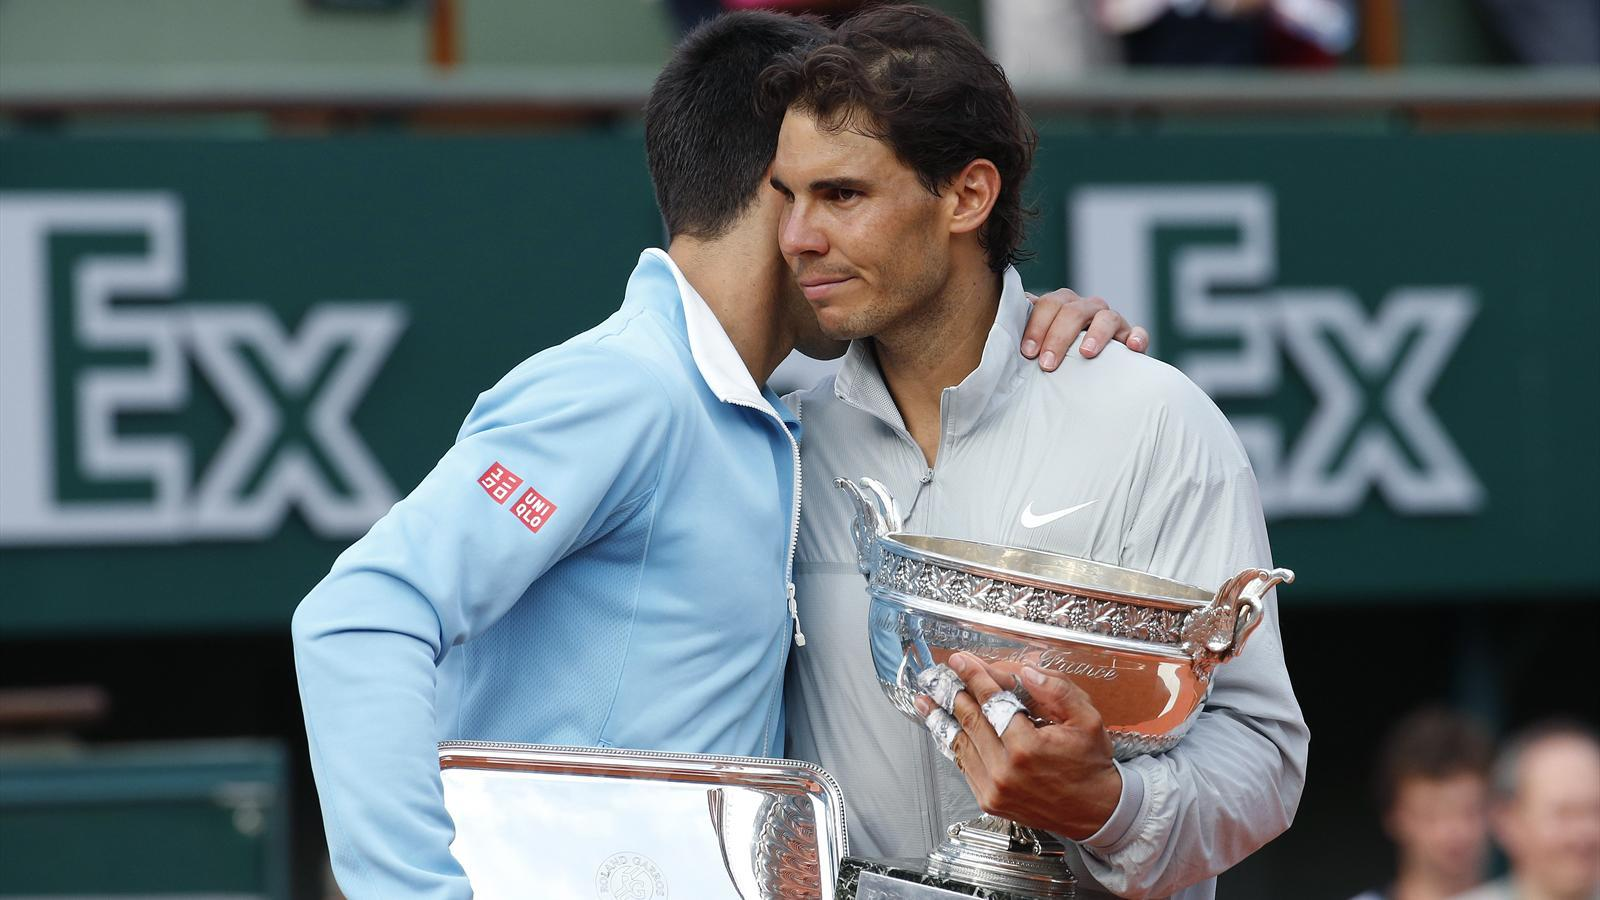 rafael nadal could win madrid open without novak djokovic 2015